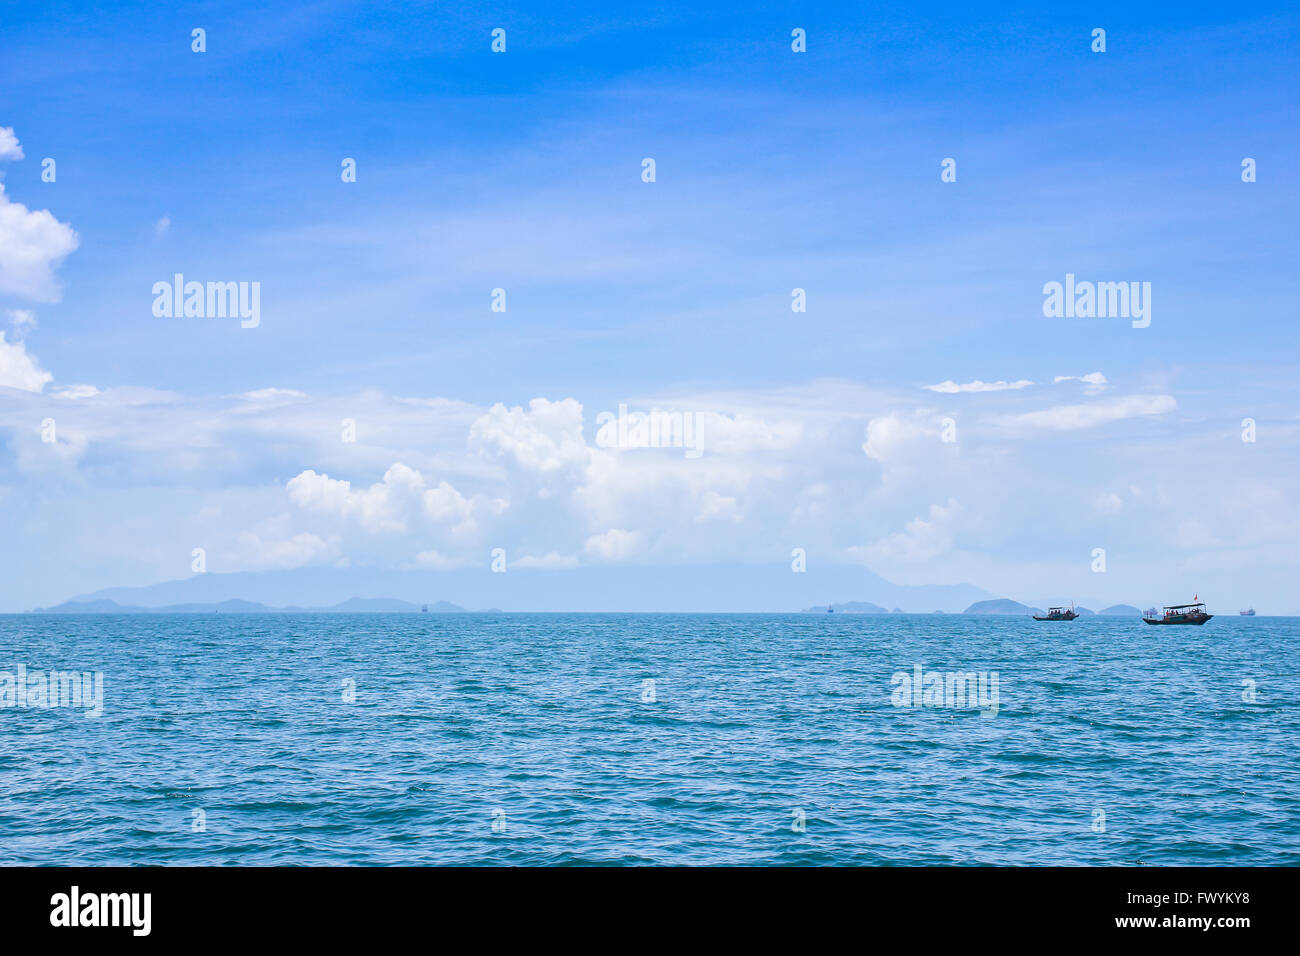 Huizhou ten mile Silver Beach ocean scenery - Stock Image